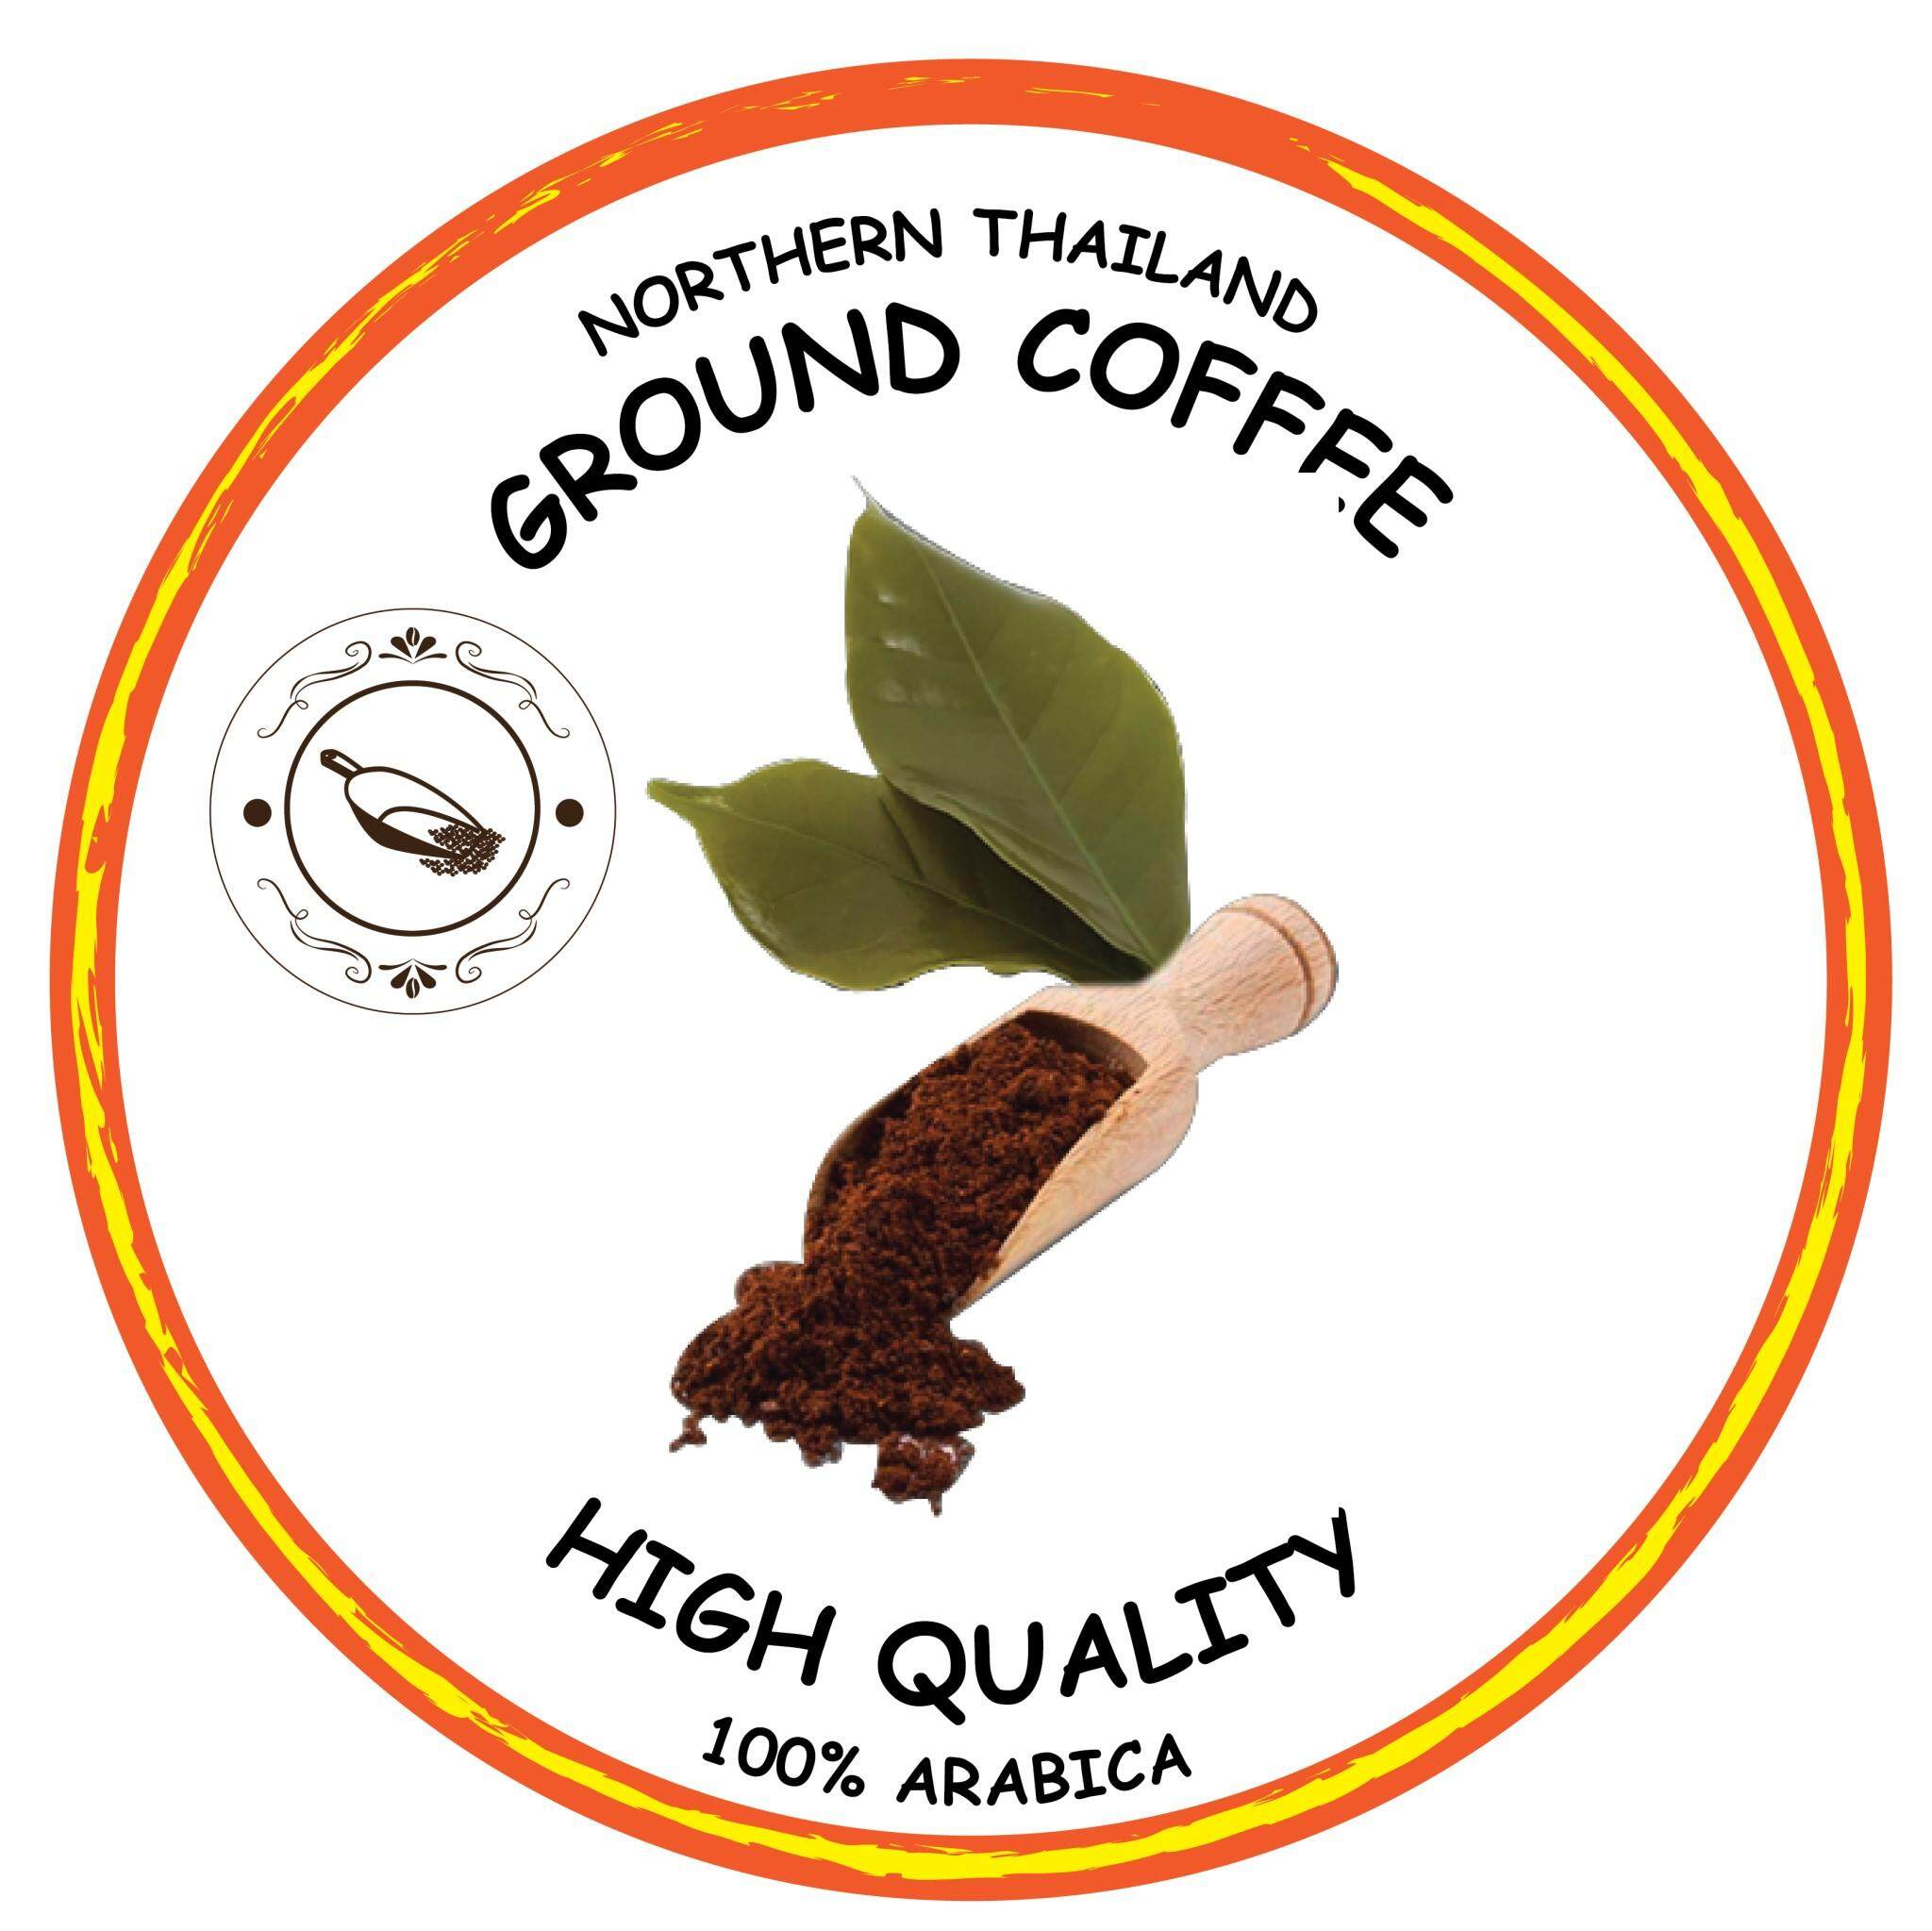 Ground coffee round orange.jpg